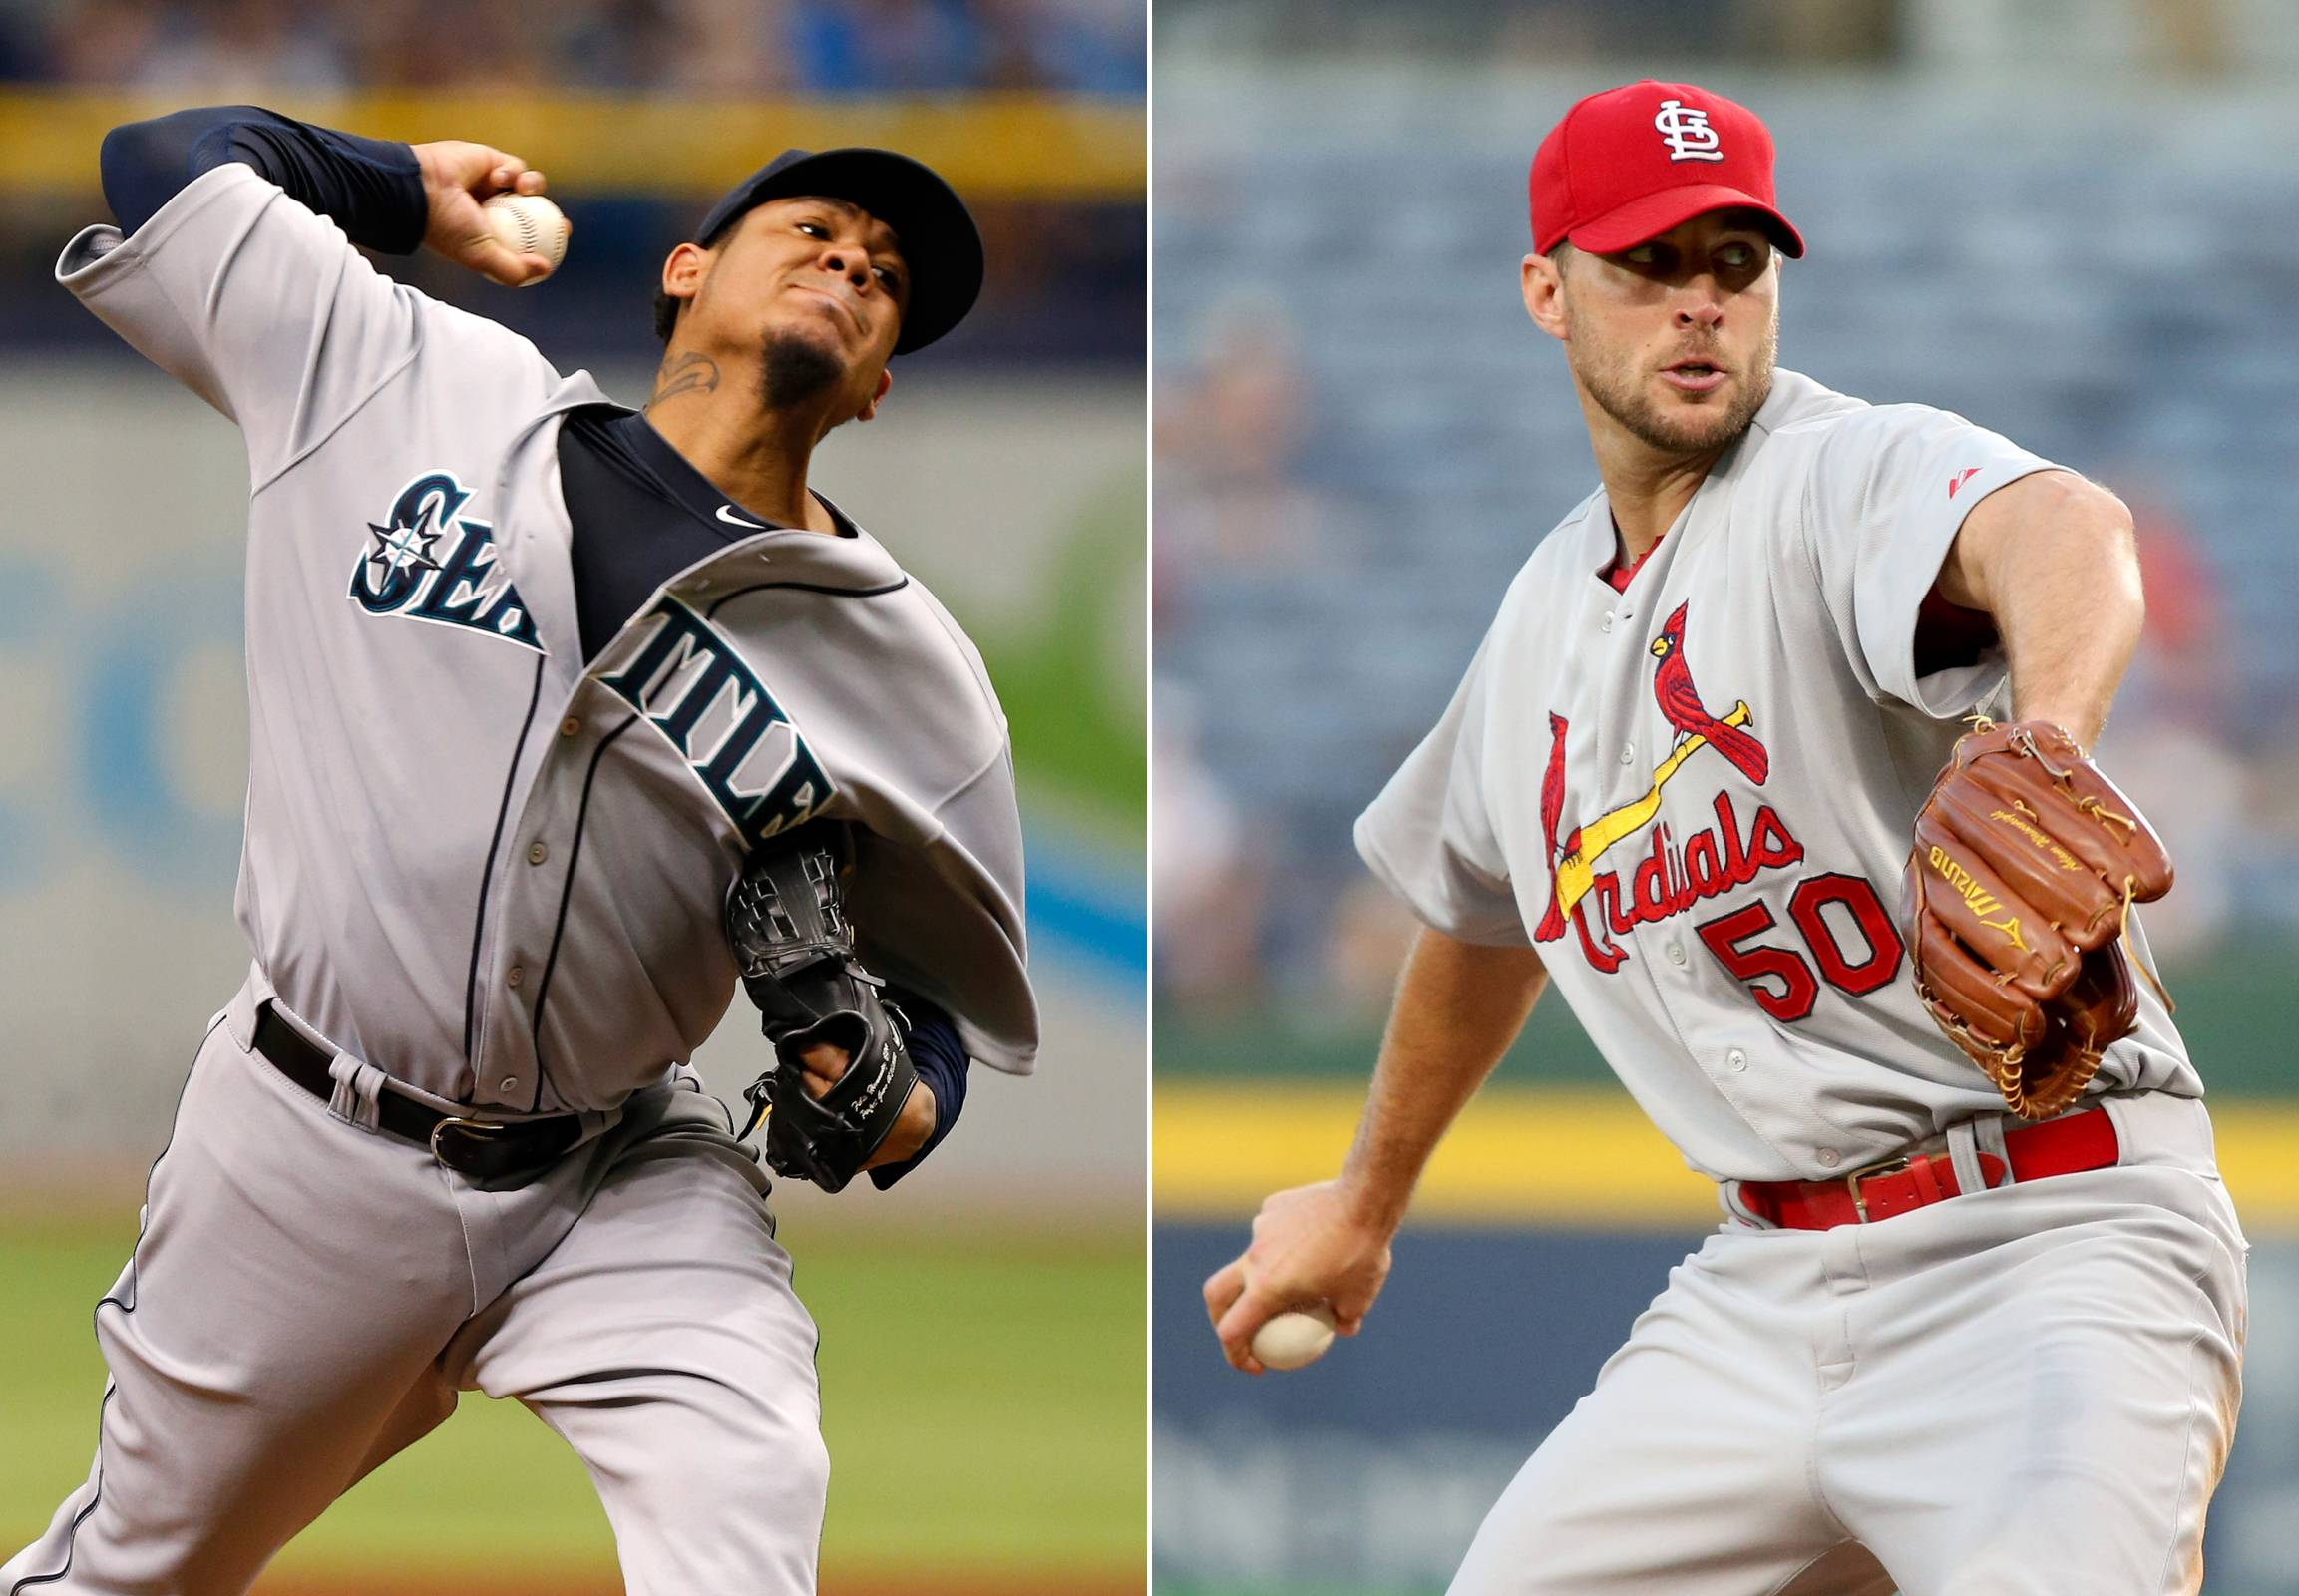 Seattle Mariners starting pitcher Felix Hernandez, left, and St. Louis Cardinals starting pitcher Adam Wainwright will start Tuesday night's all-star game.